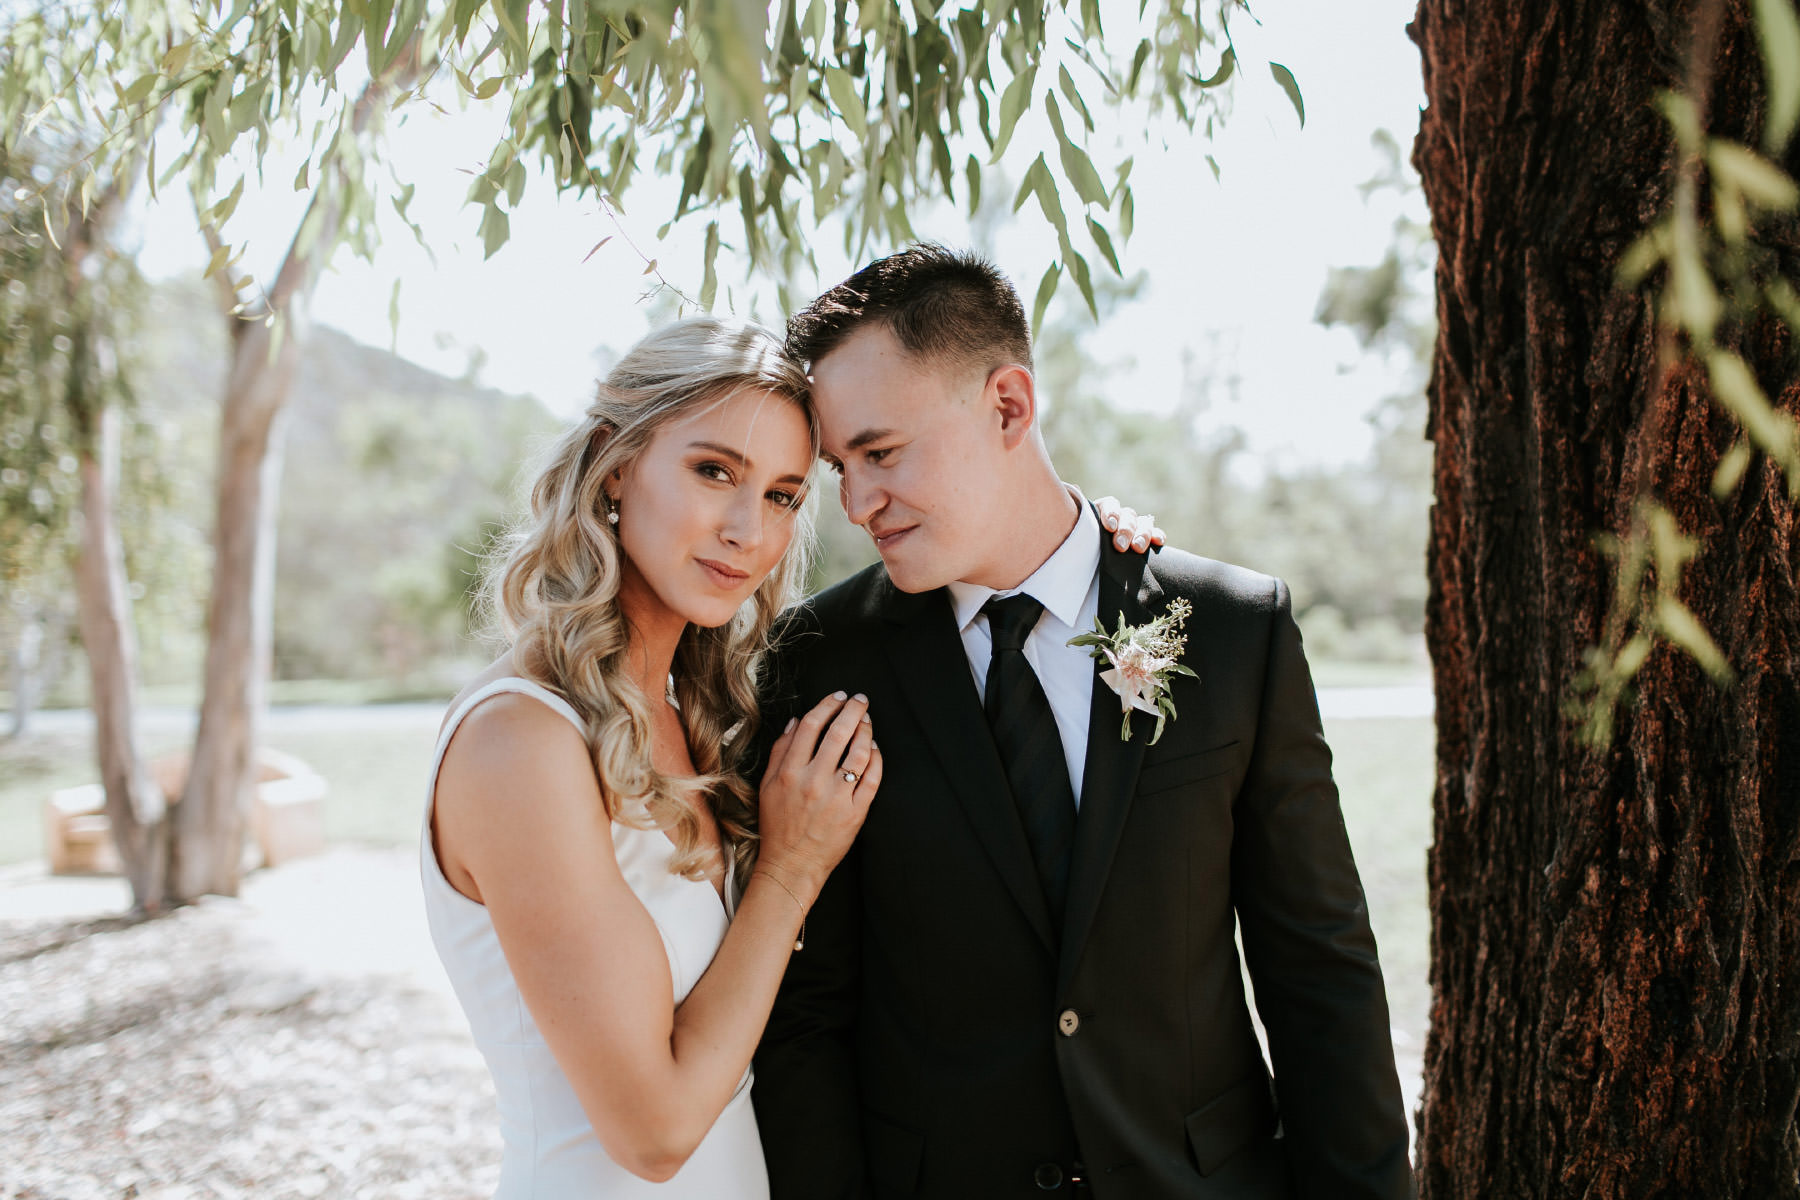 Beautiful estate wedding in Rancho Sante Fe